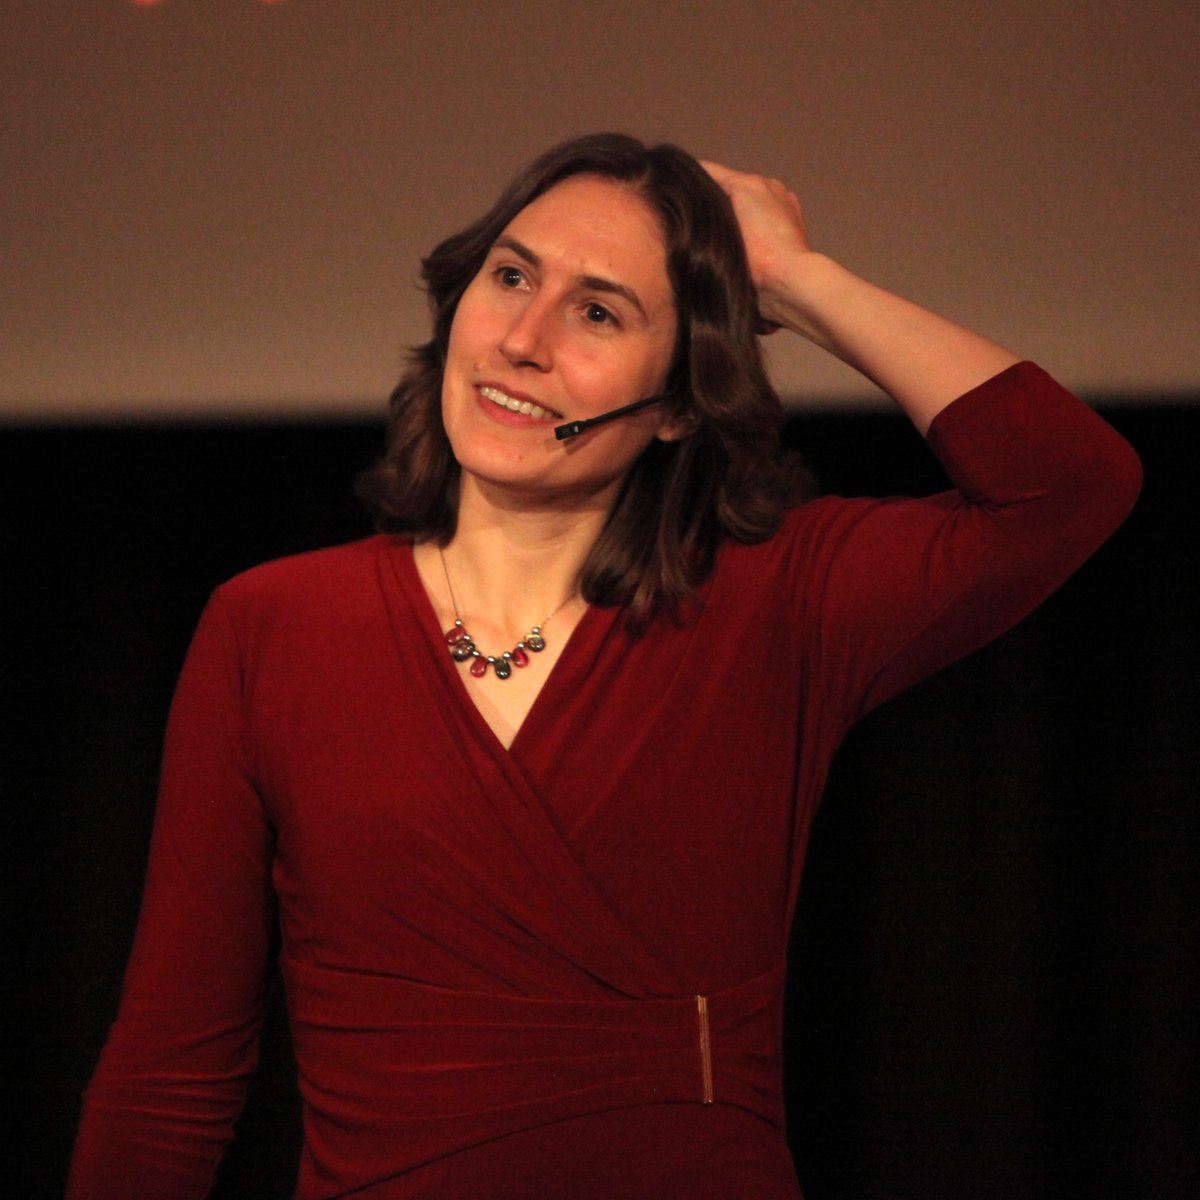 Katie Mack is today's Scientist 👩🏻🔬 of the Week! She is a theoretical cosmologist who has tried to work out what might happen when the unvierse ends. ⚰️ Mack is interested in the intersection of art 🎨 and science. 🥼  #Fun #FunScience #Science #ScientistOfTheWeek #Space #Time https://t.co/D2JT1sAXPZ